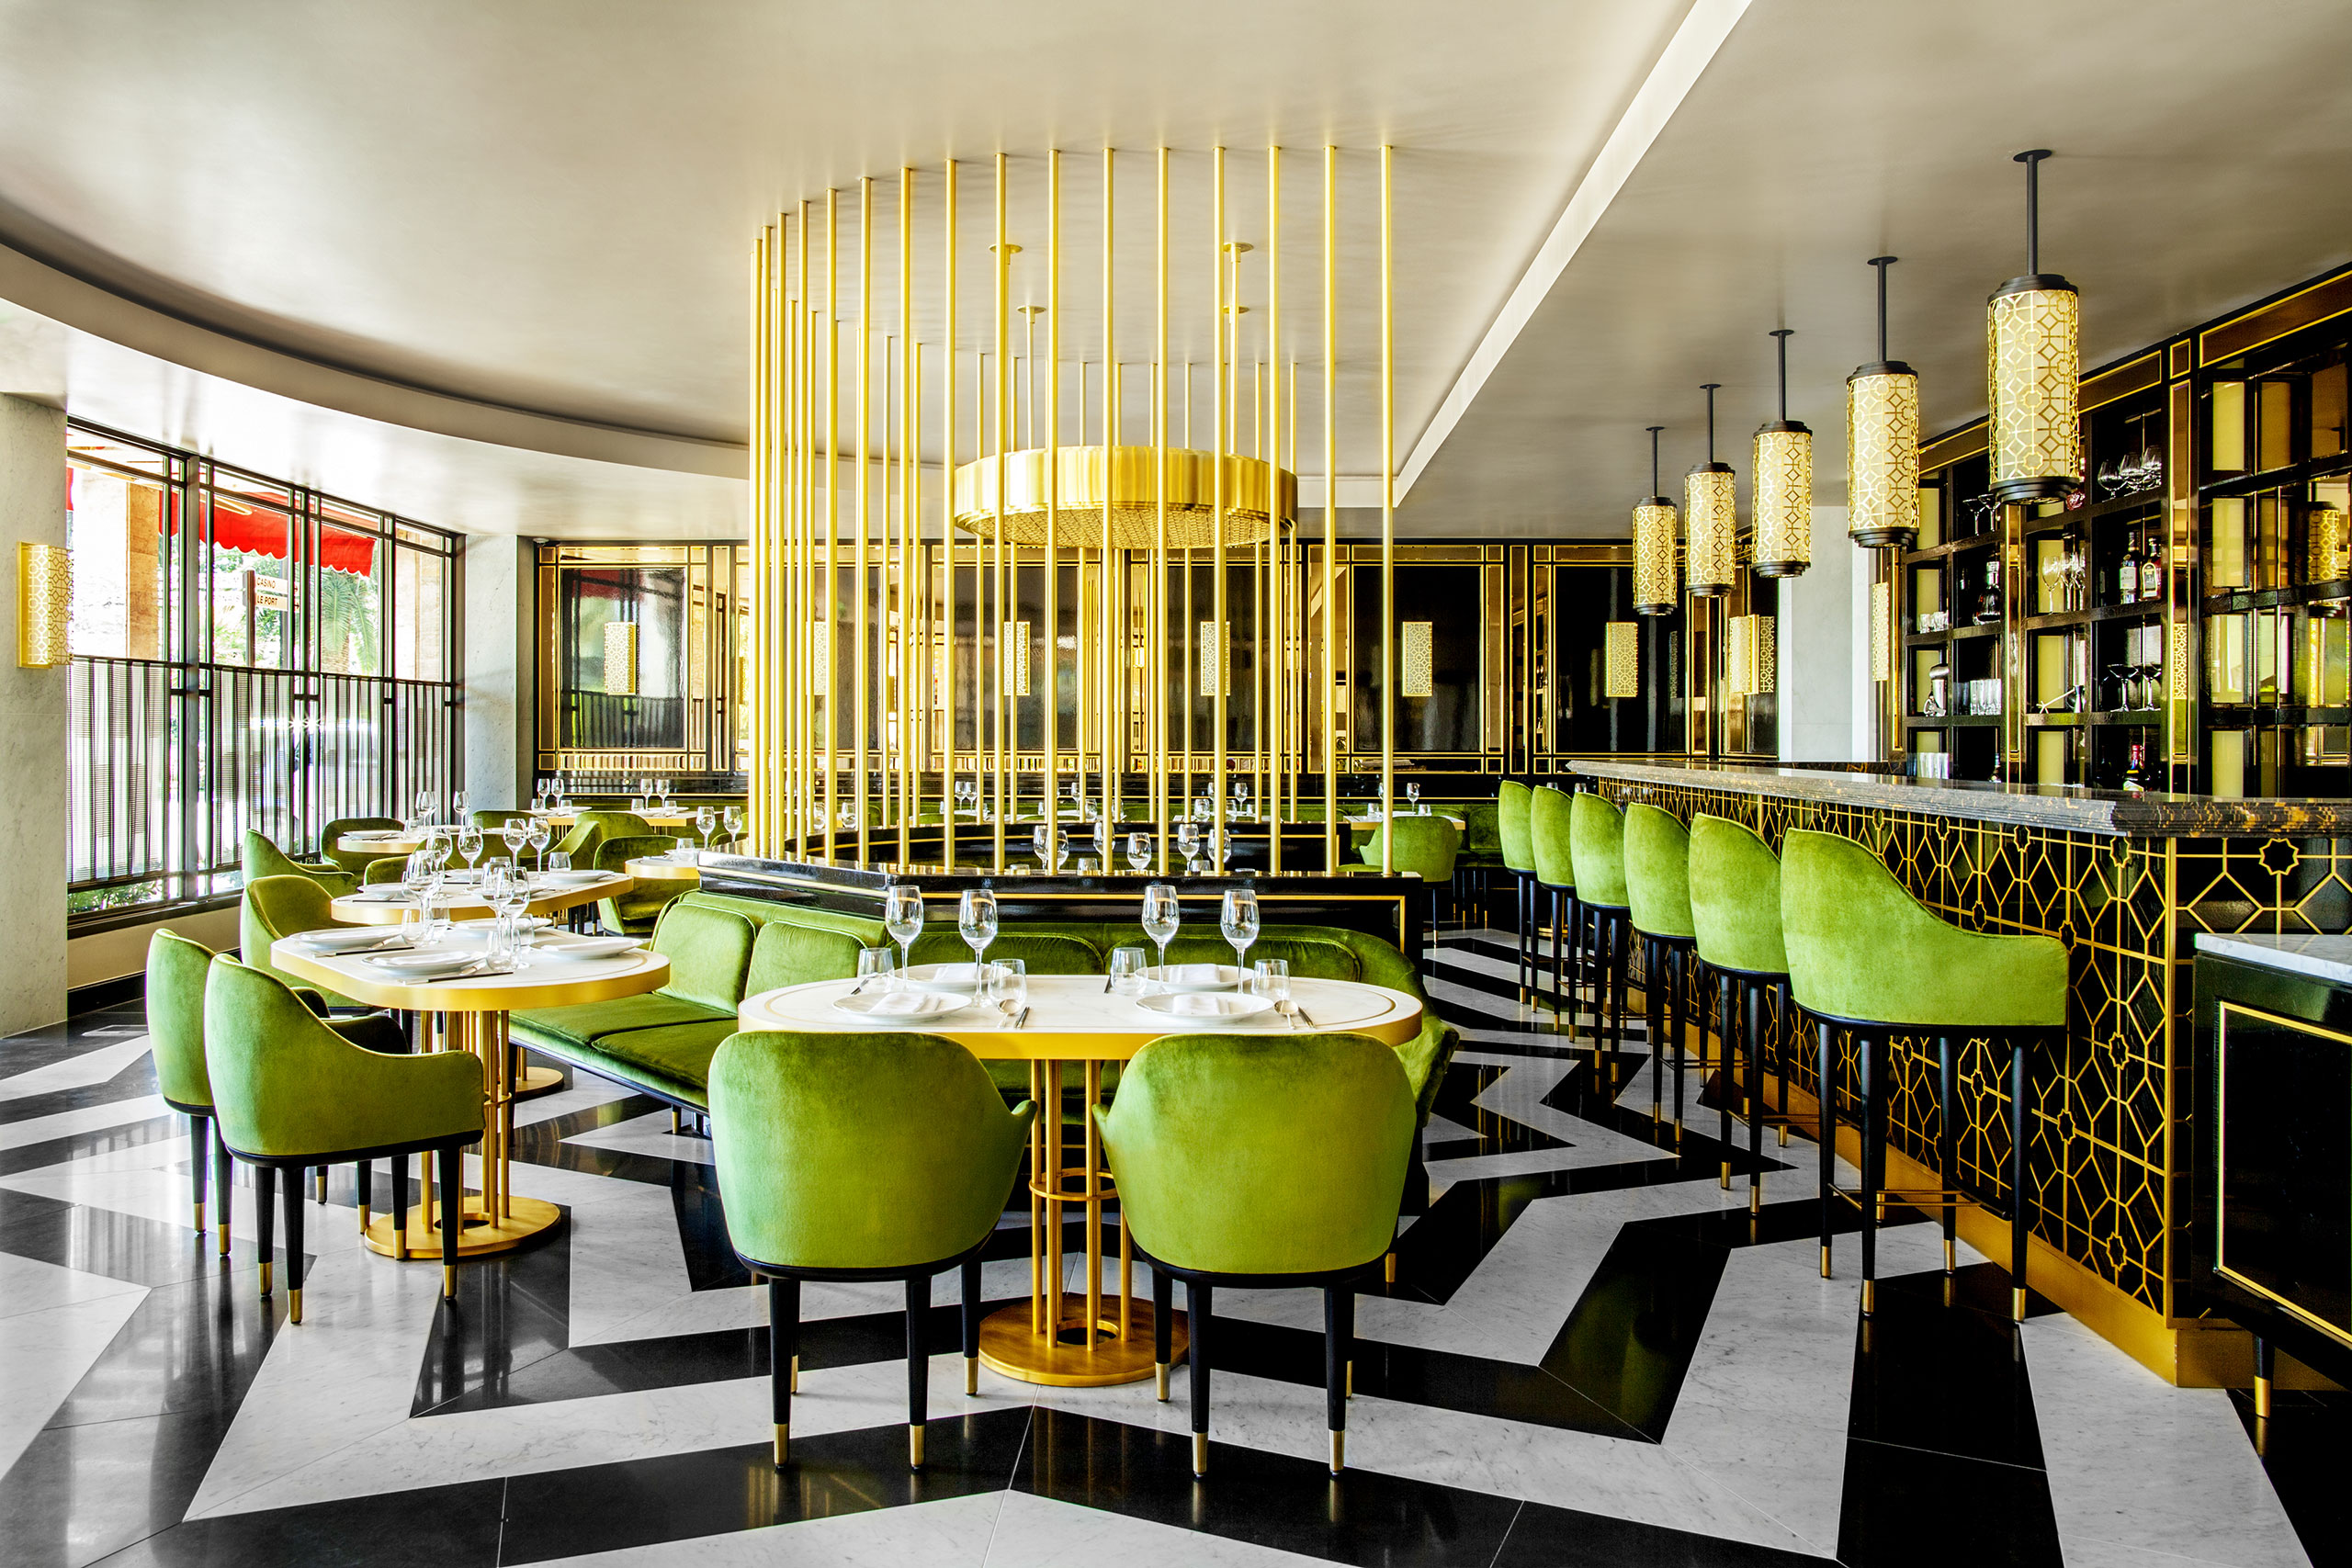 BRASS INTERIOR DESIGN - restaurant design